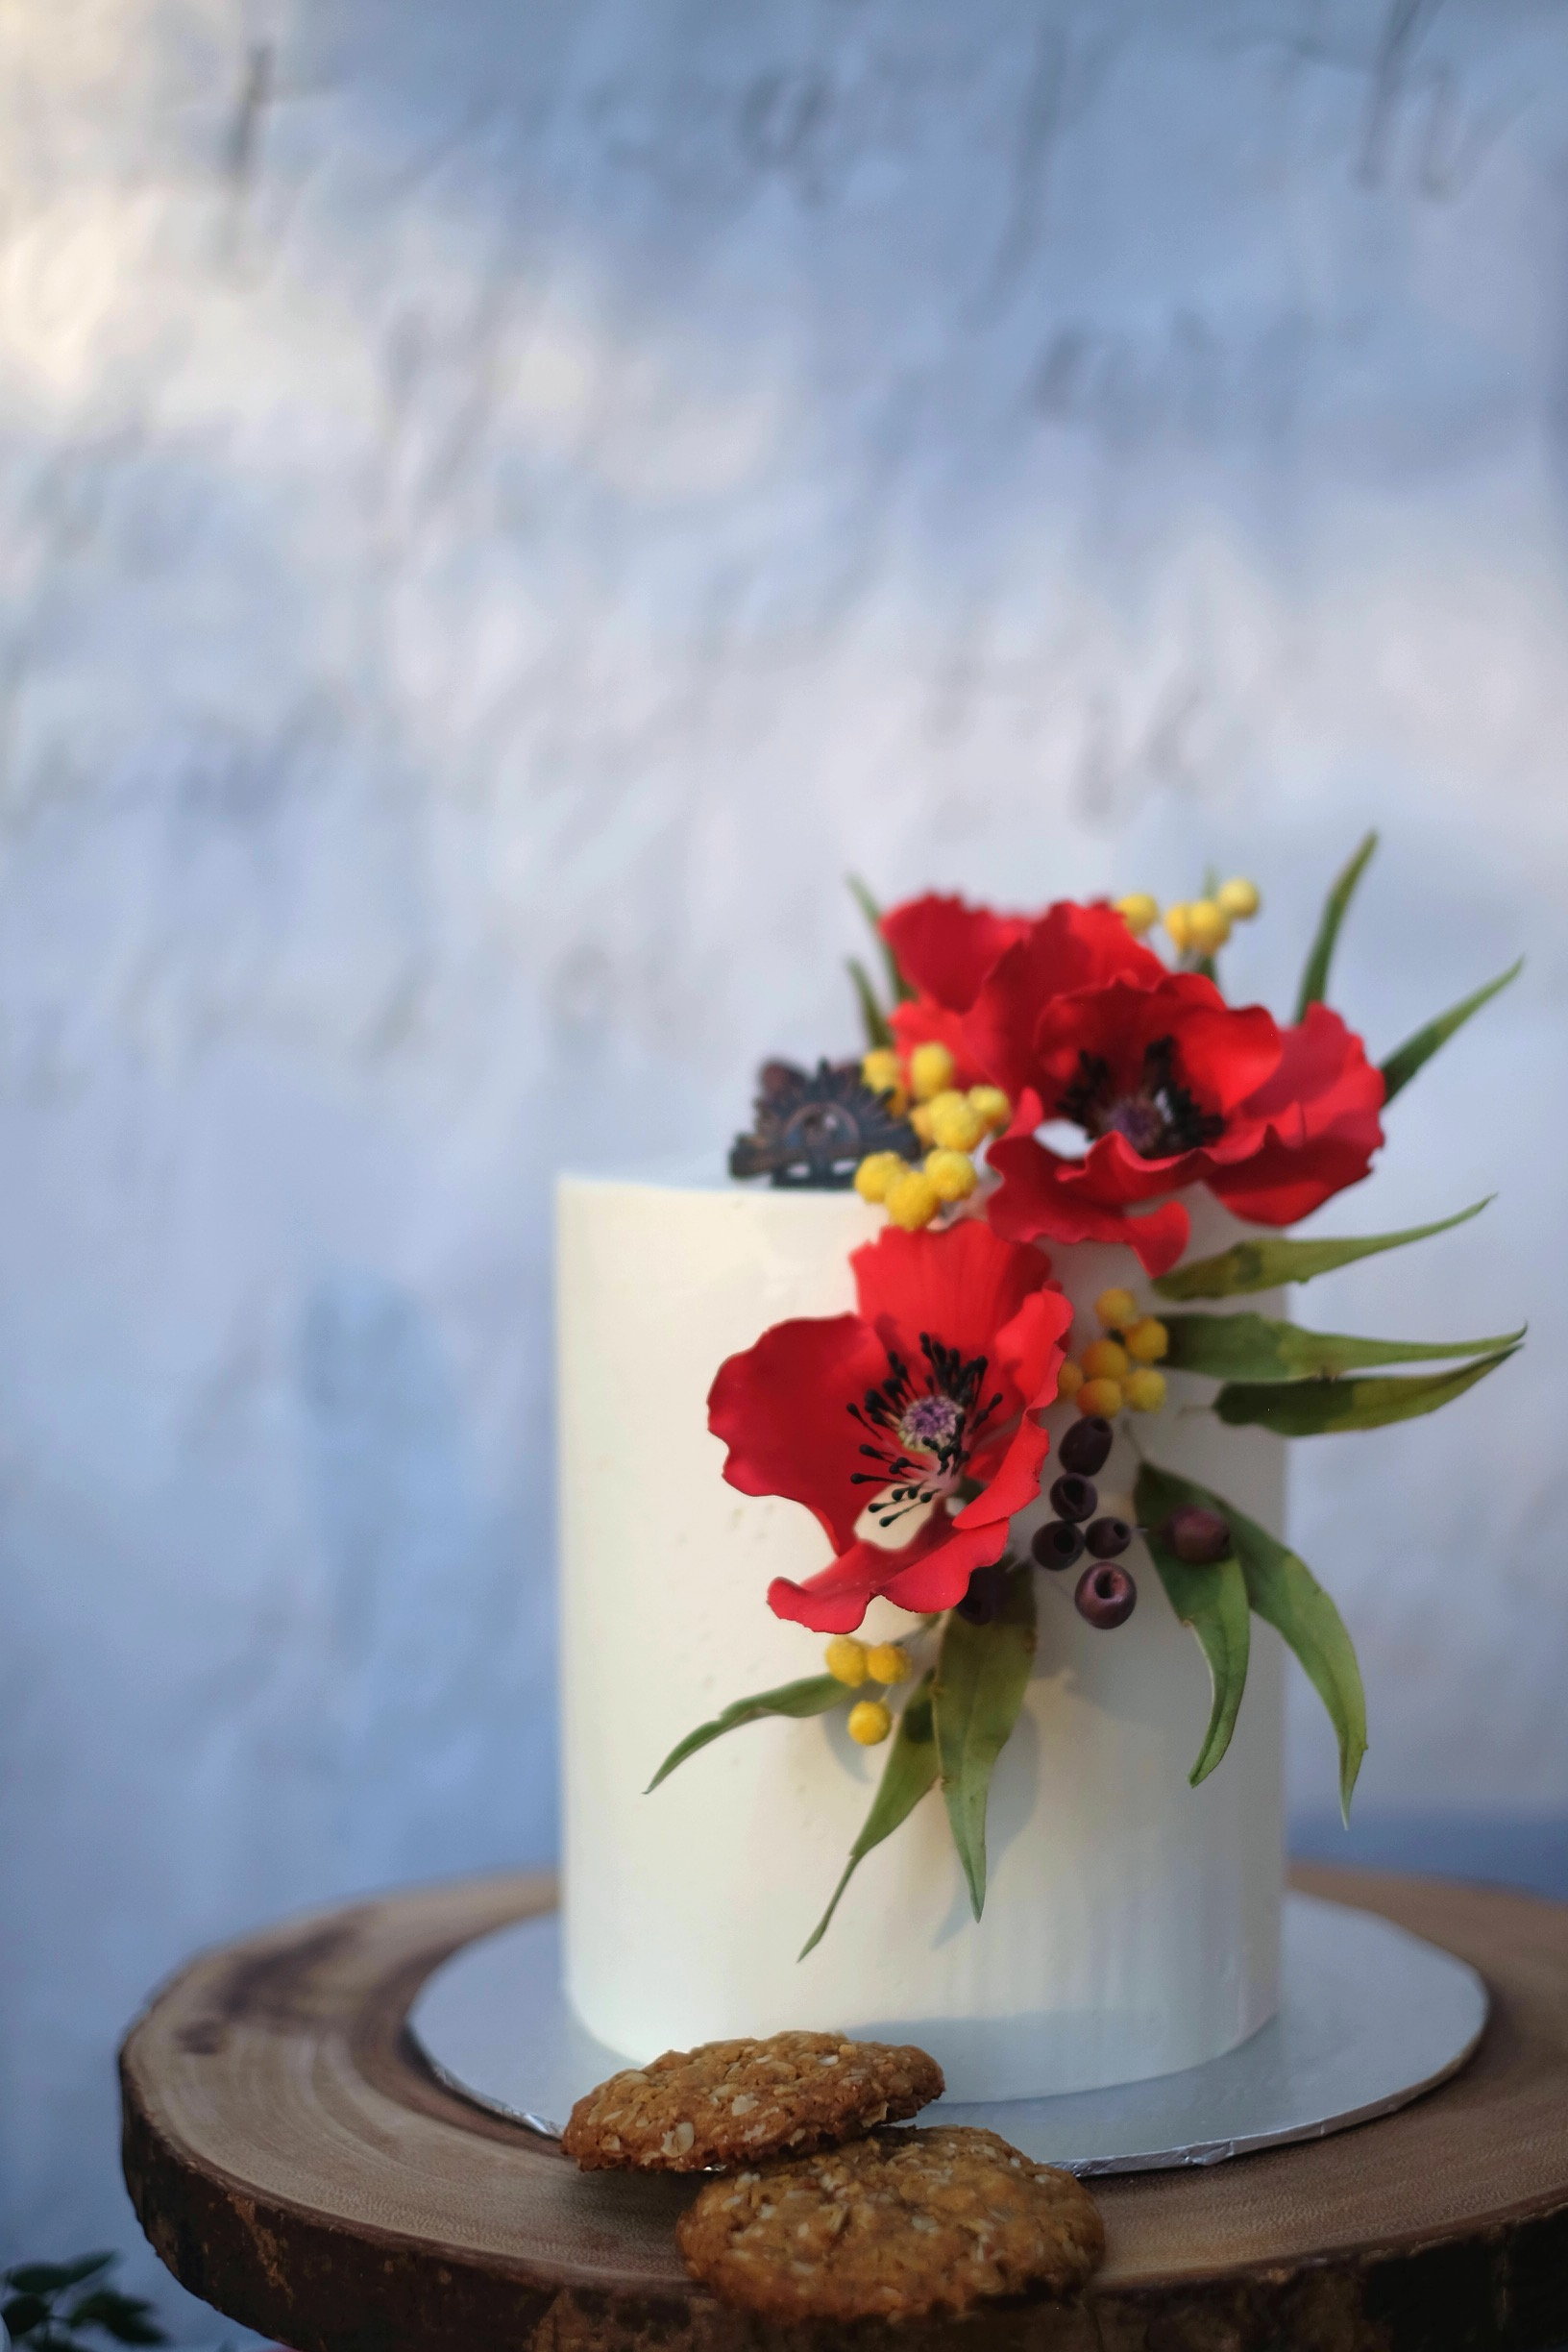 White wedding with red sugar poppies